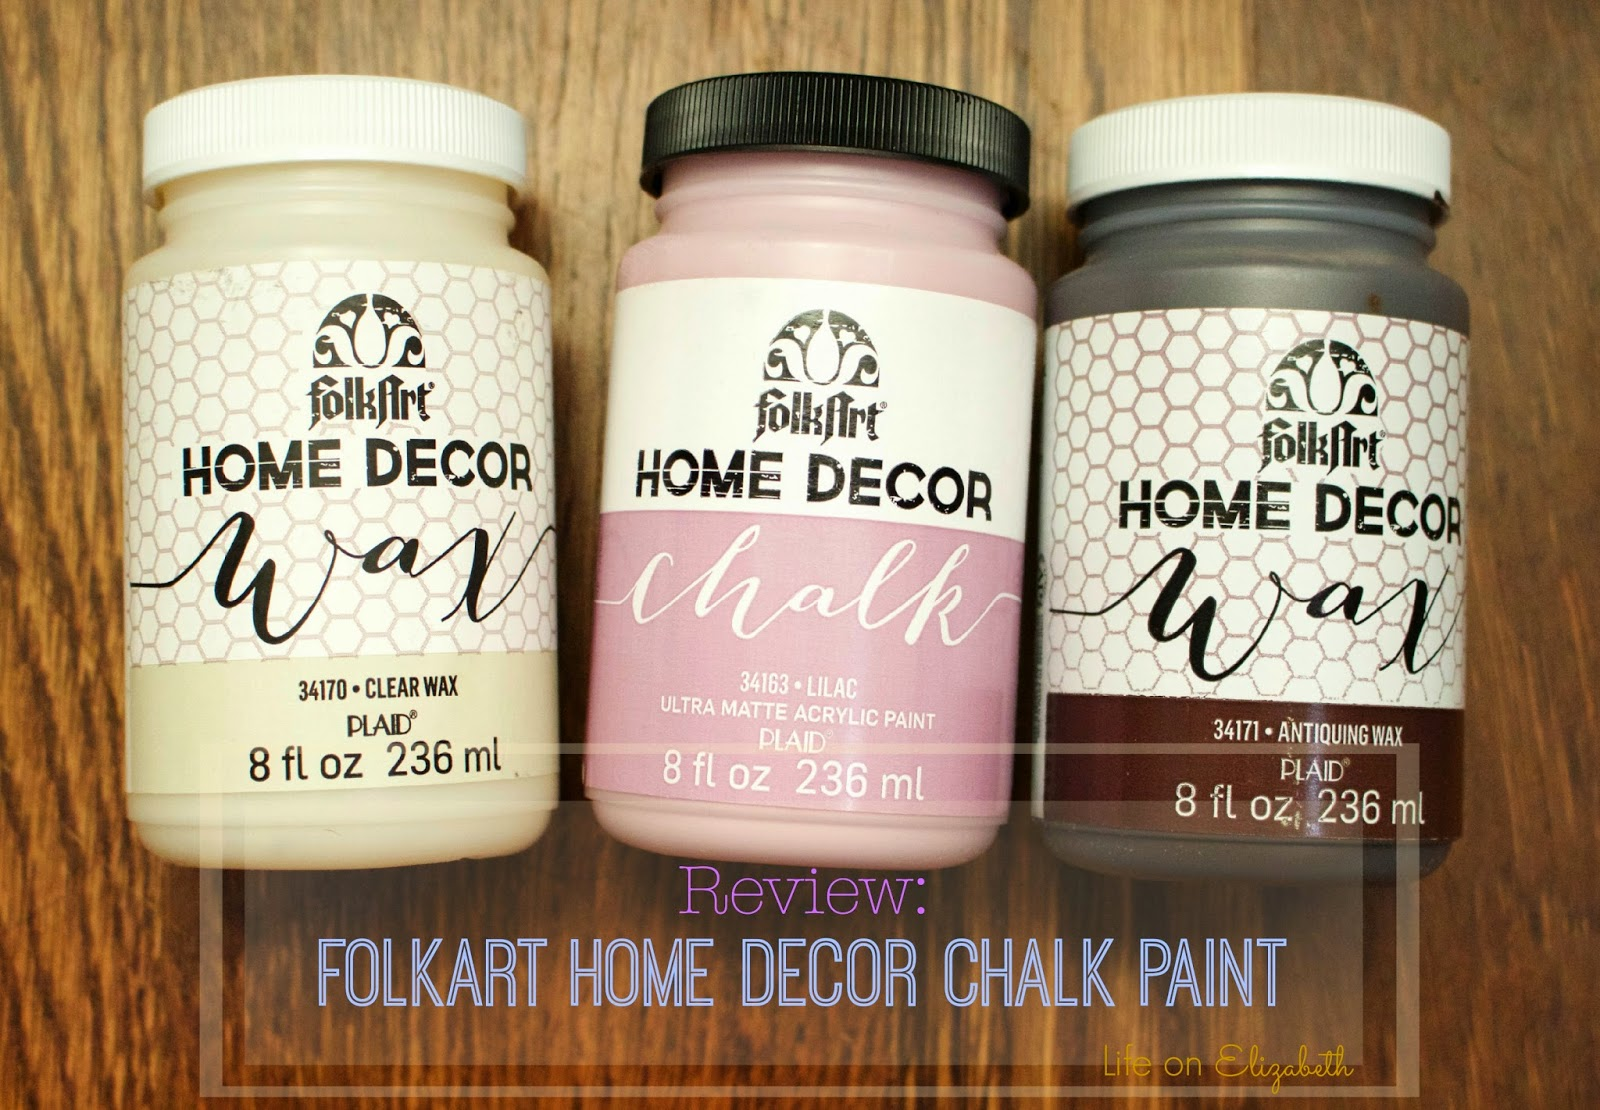 Folkart Home Decor Chalk Paint Review